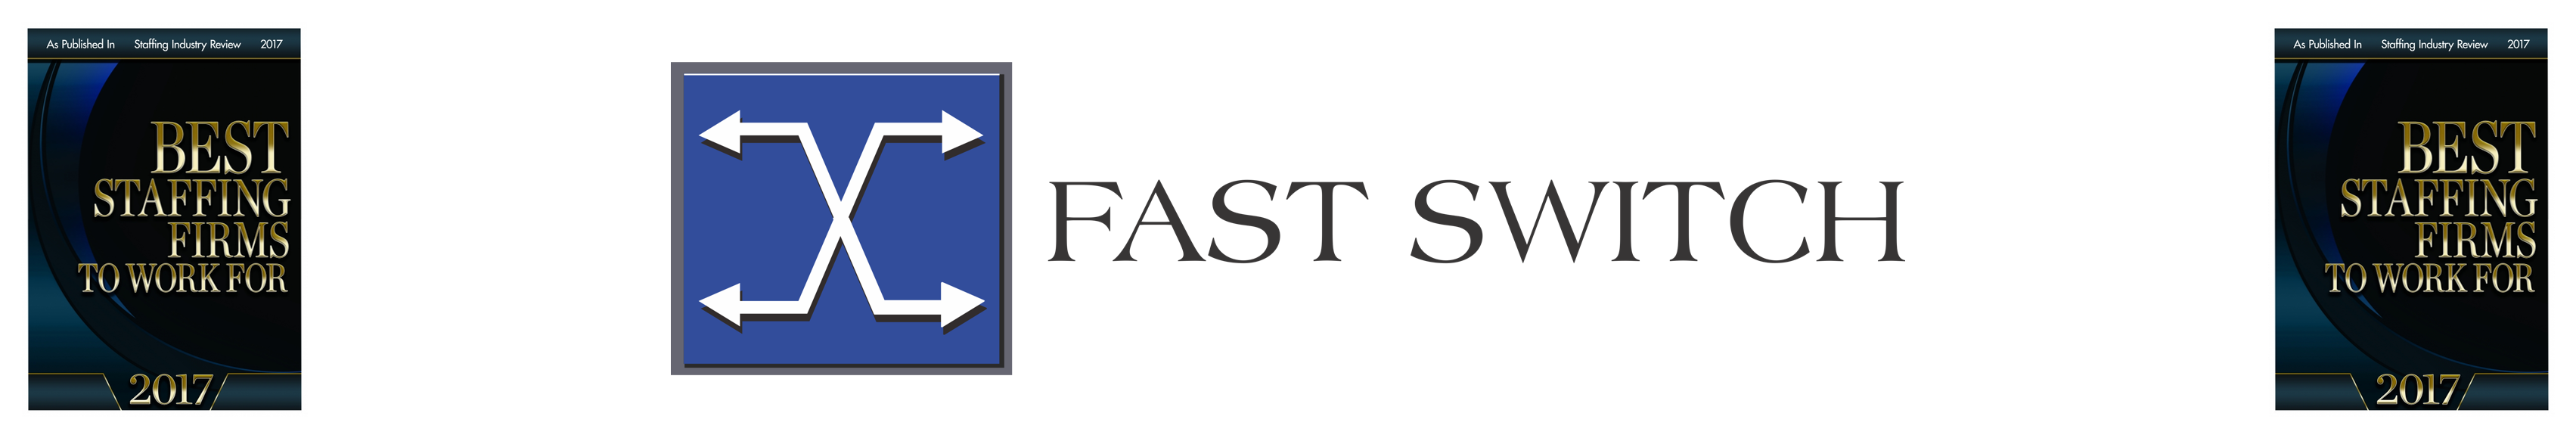 Fast Switch IT Staffing & Recruiting - For Customers Page